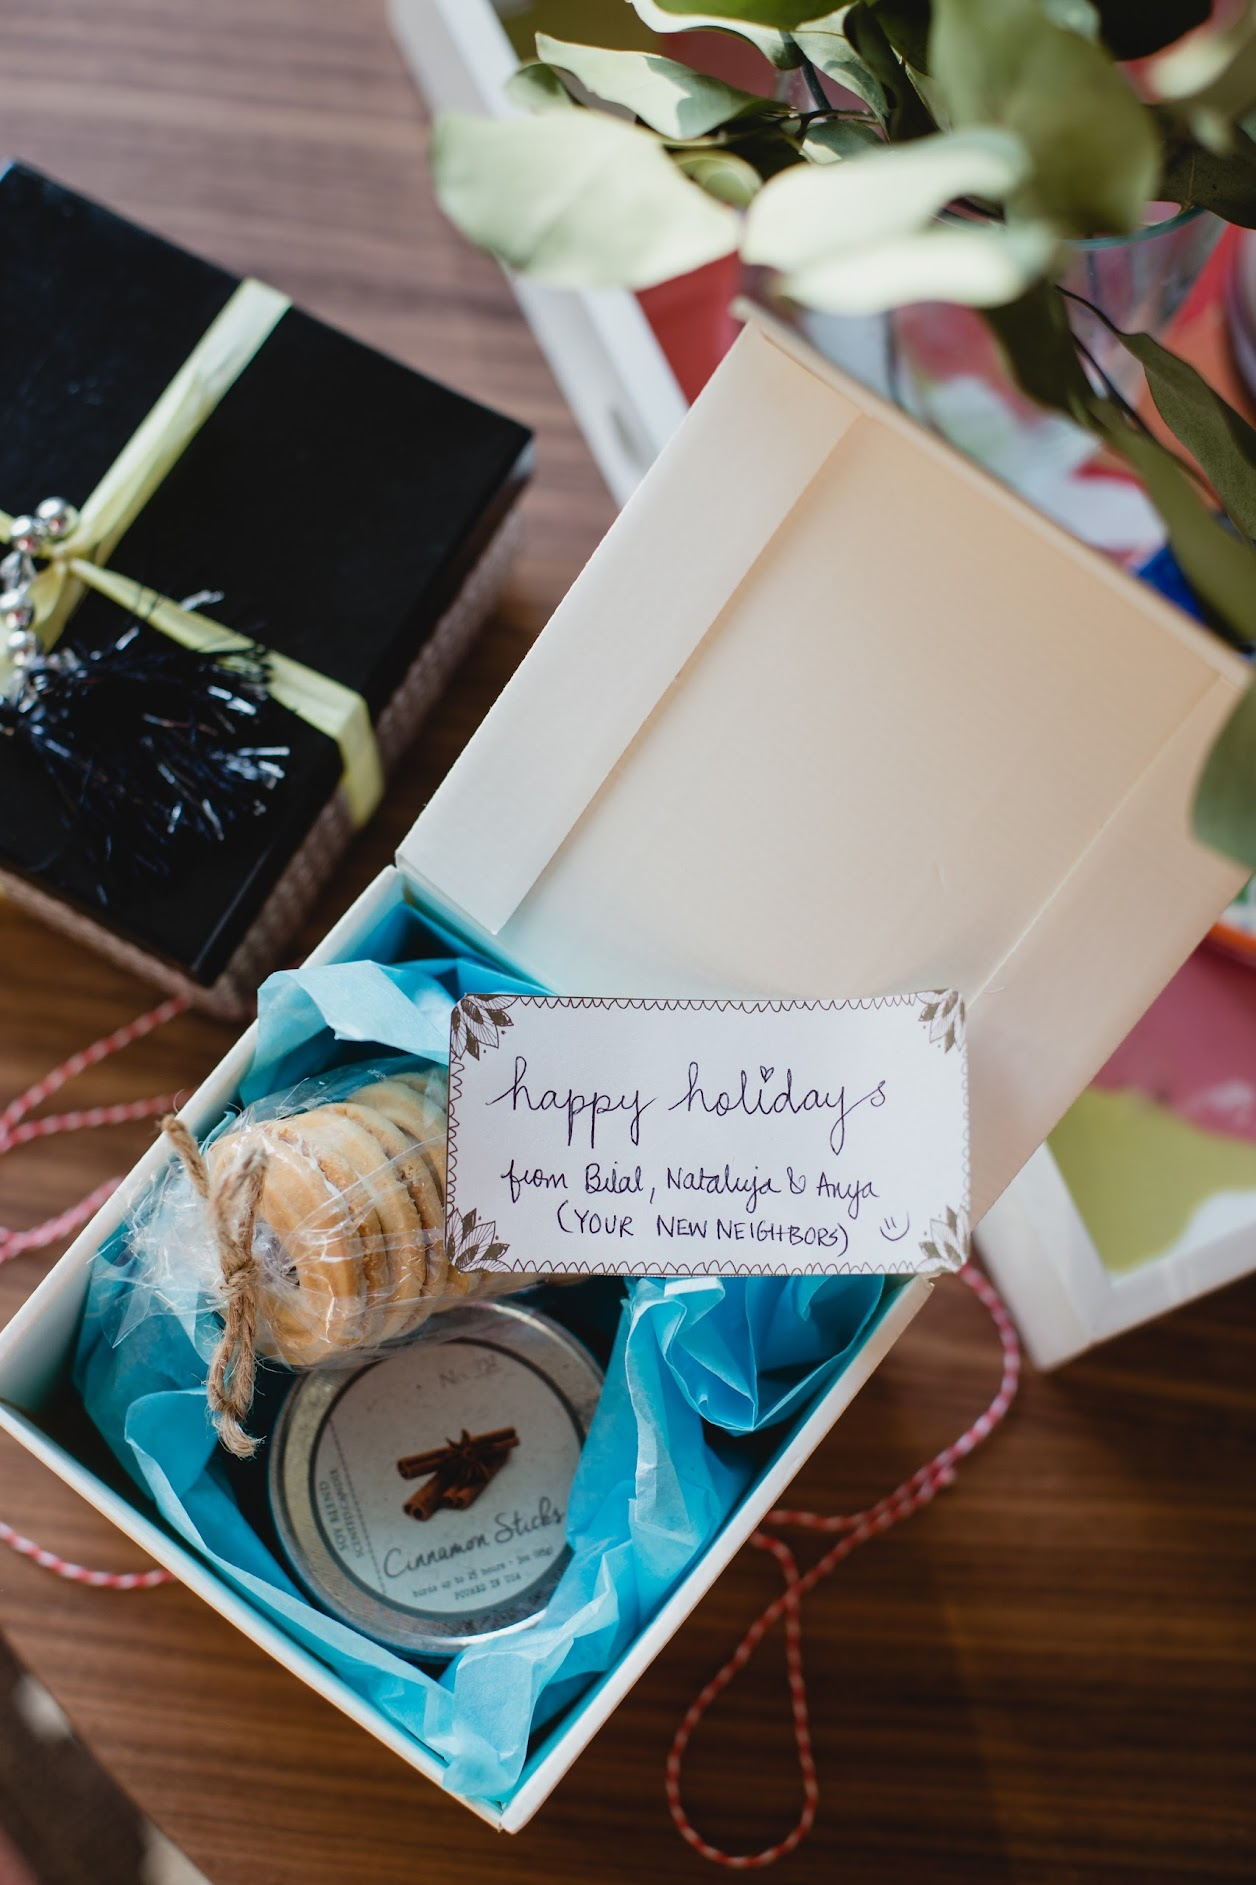 Gift ideas + what I learned from my mom about giving gifts